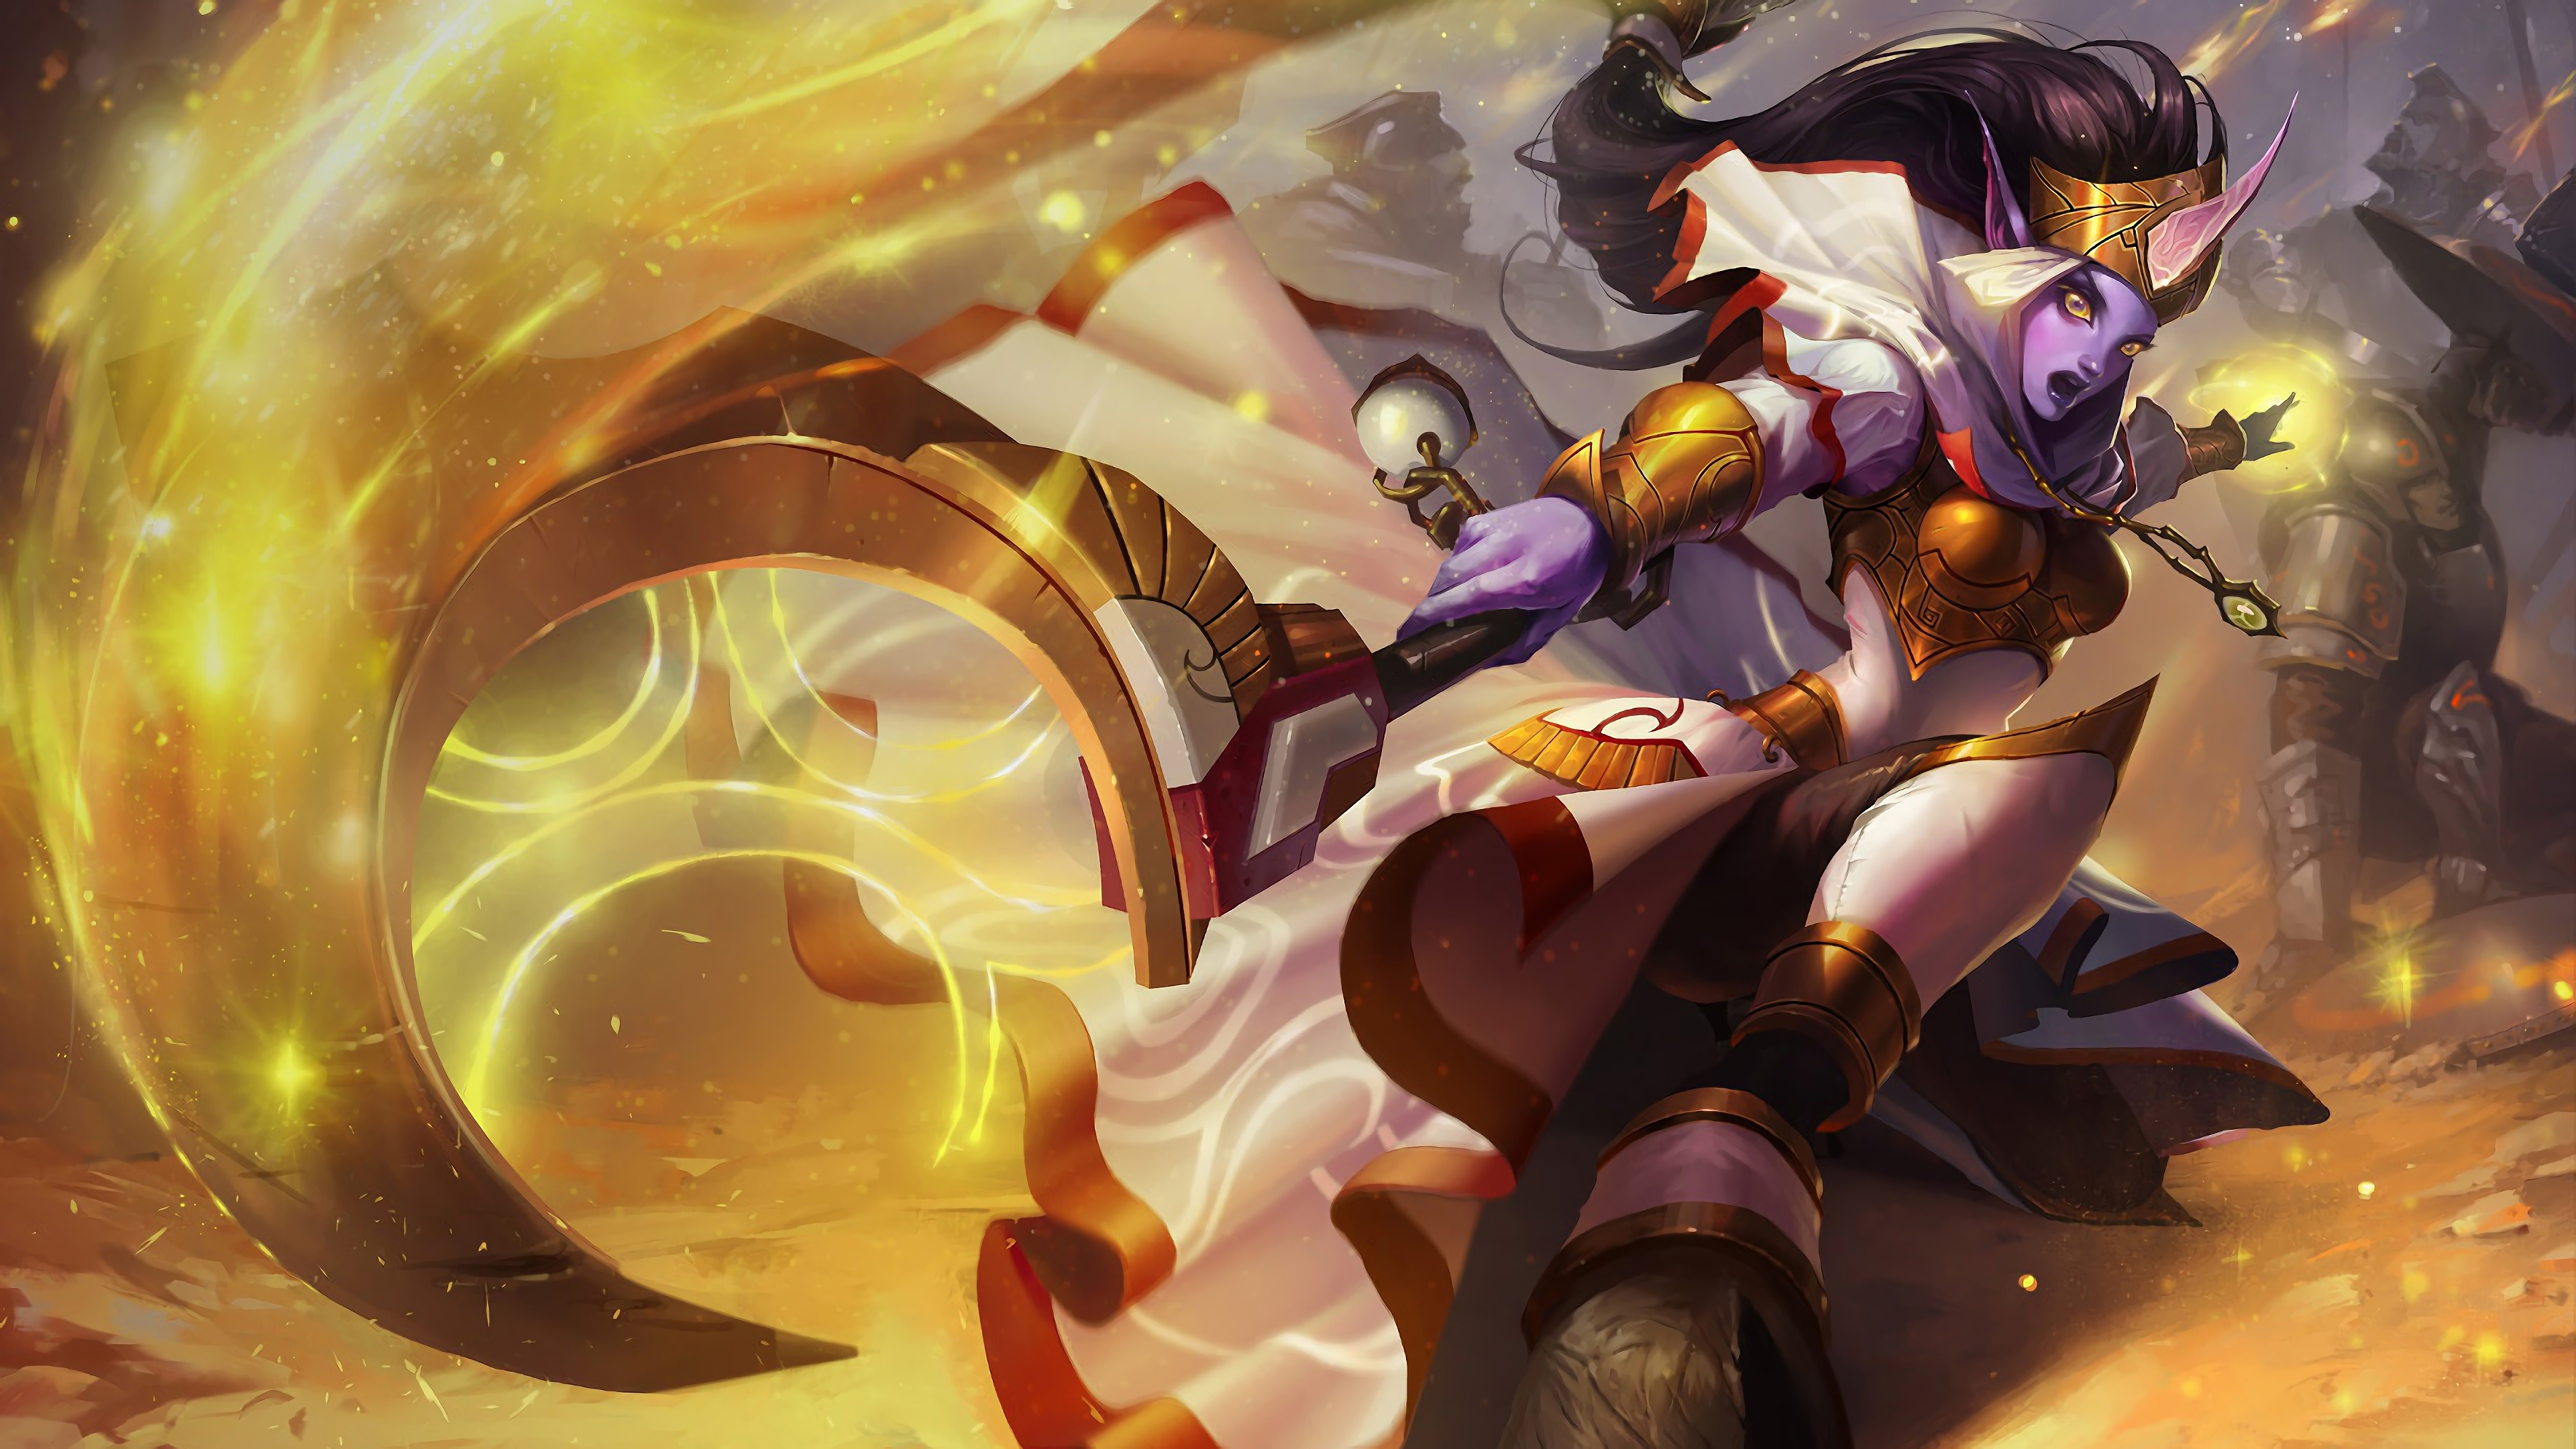 celestine soraka lol splash art league of legends 1574100639 - Celestine Soraka LoL Splash Art League of Legends - Soraka, league of legends